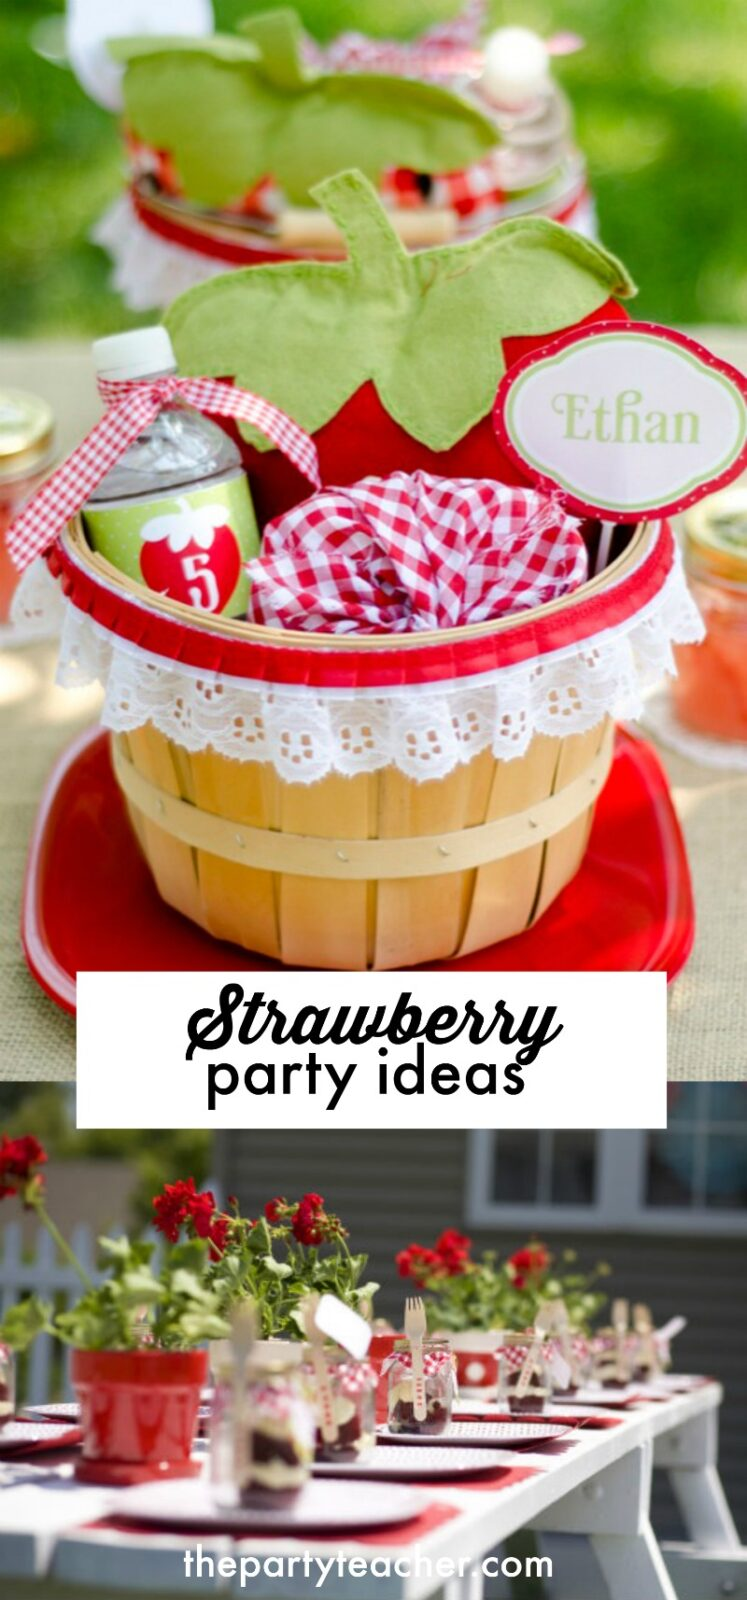 Strawberry party ideas curated by The Party Teacher